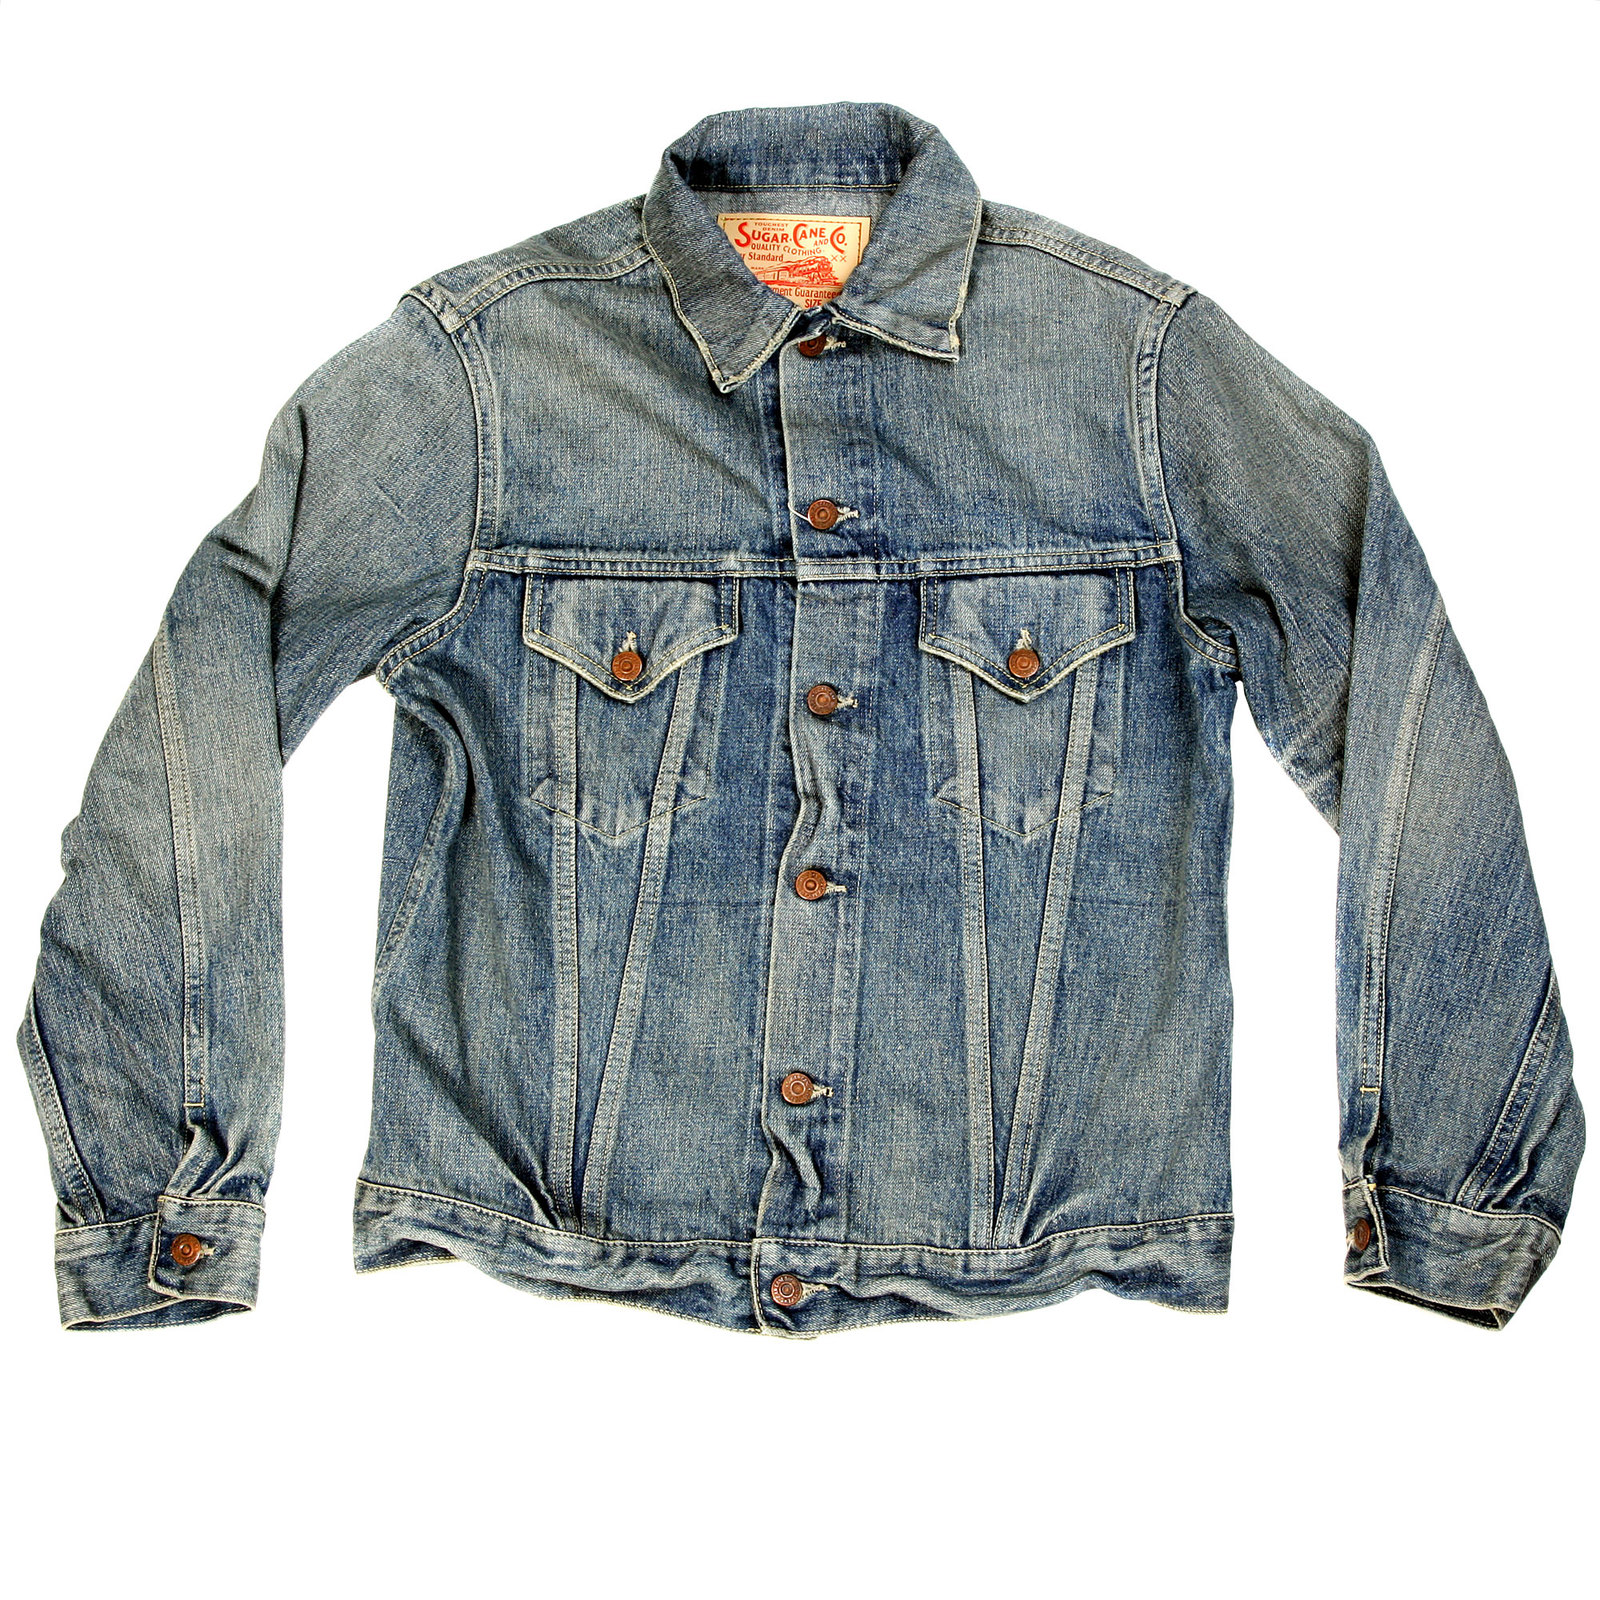 Intoxicatingly Cool Denim Jacket by Sugarcane Clothing